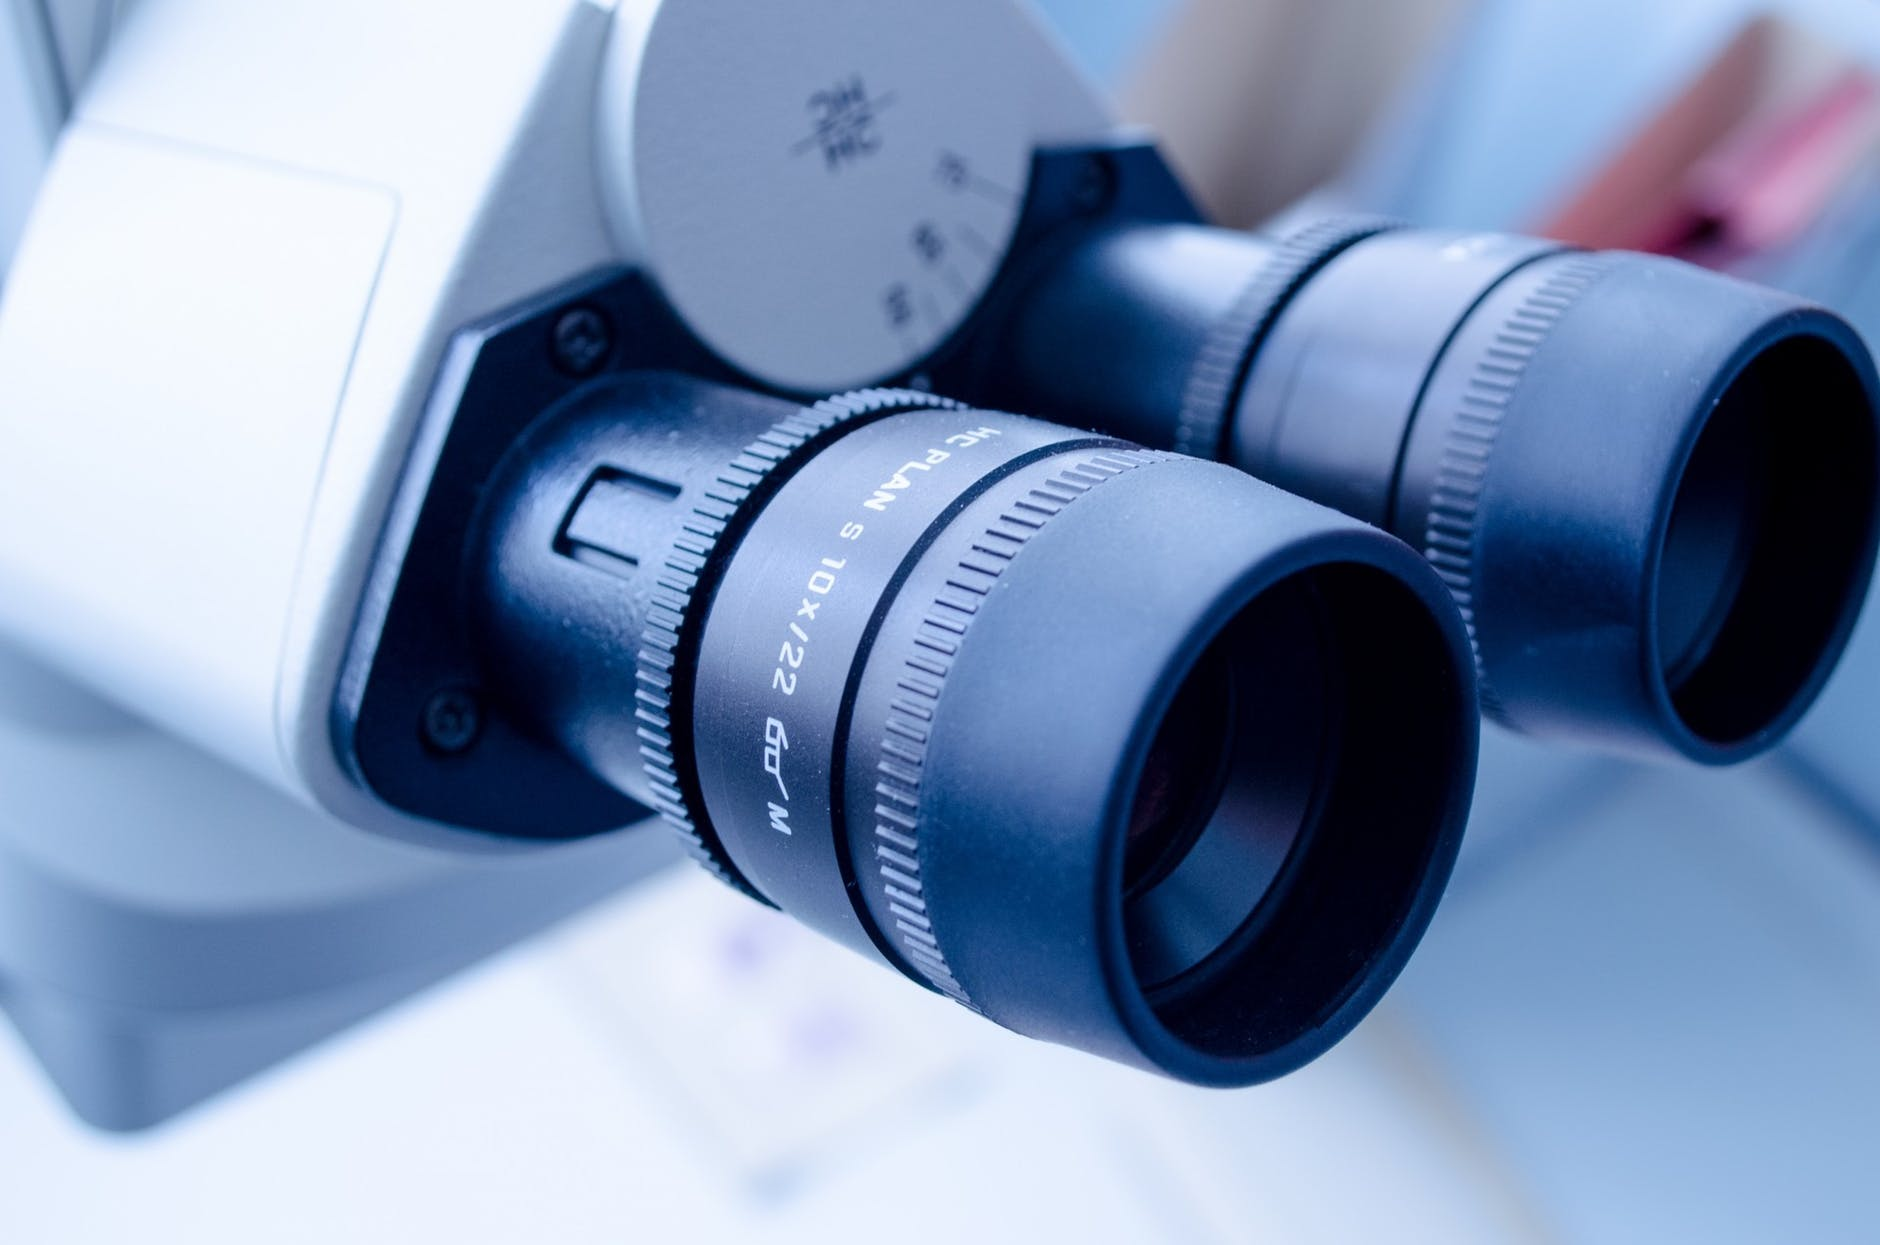 Eye equipment-Getting our eyes tested is one of the most important health tests for seniors.